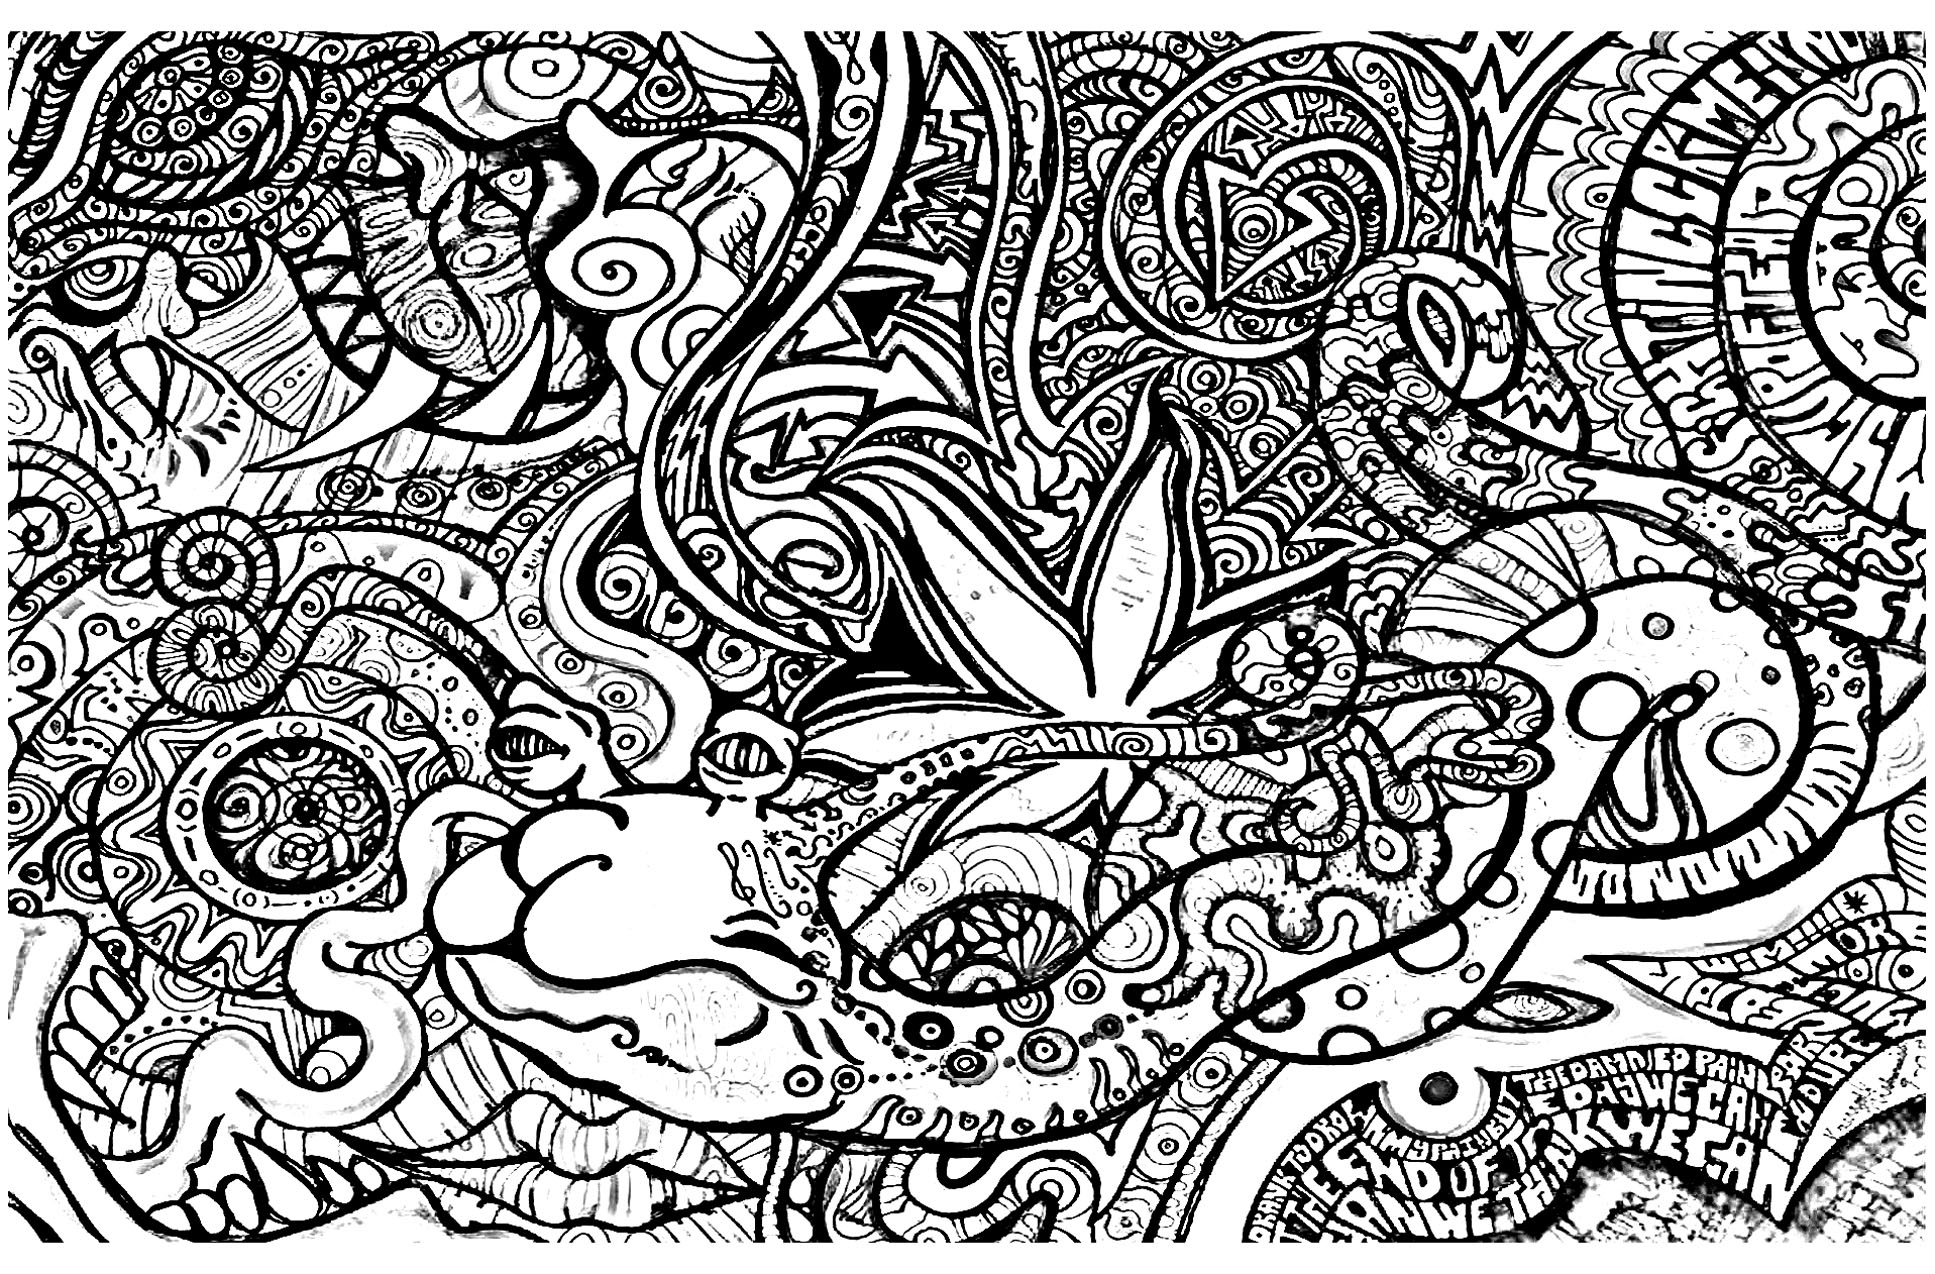 Psychedelic - Coloring pages for adults : coloring ...